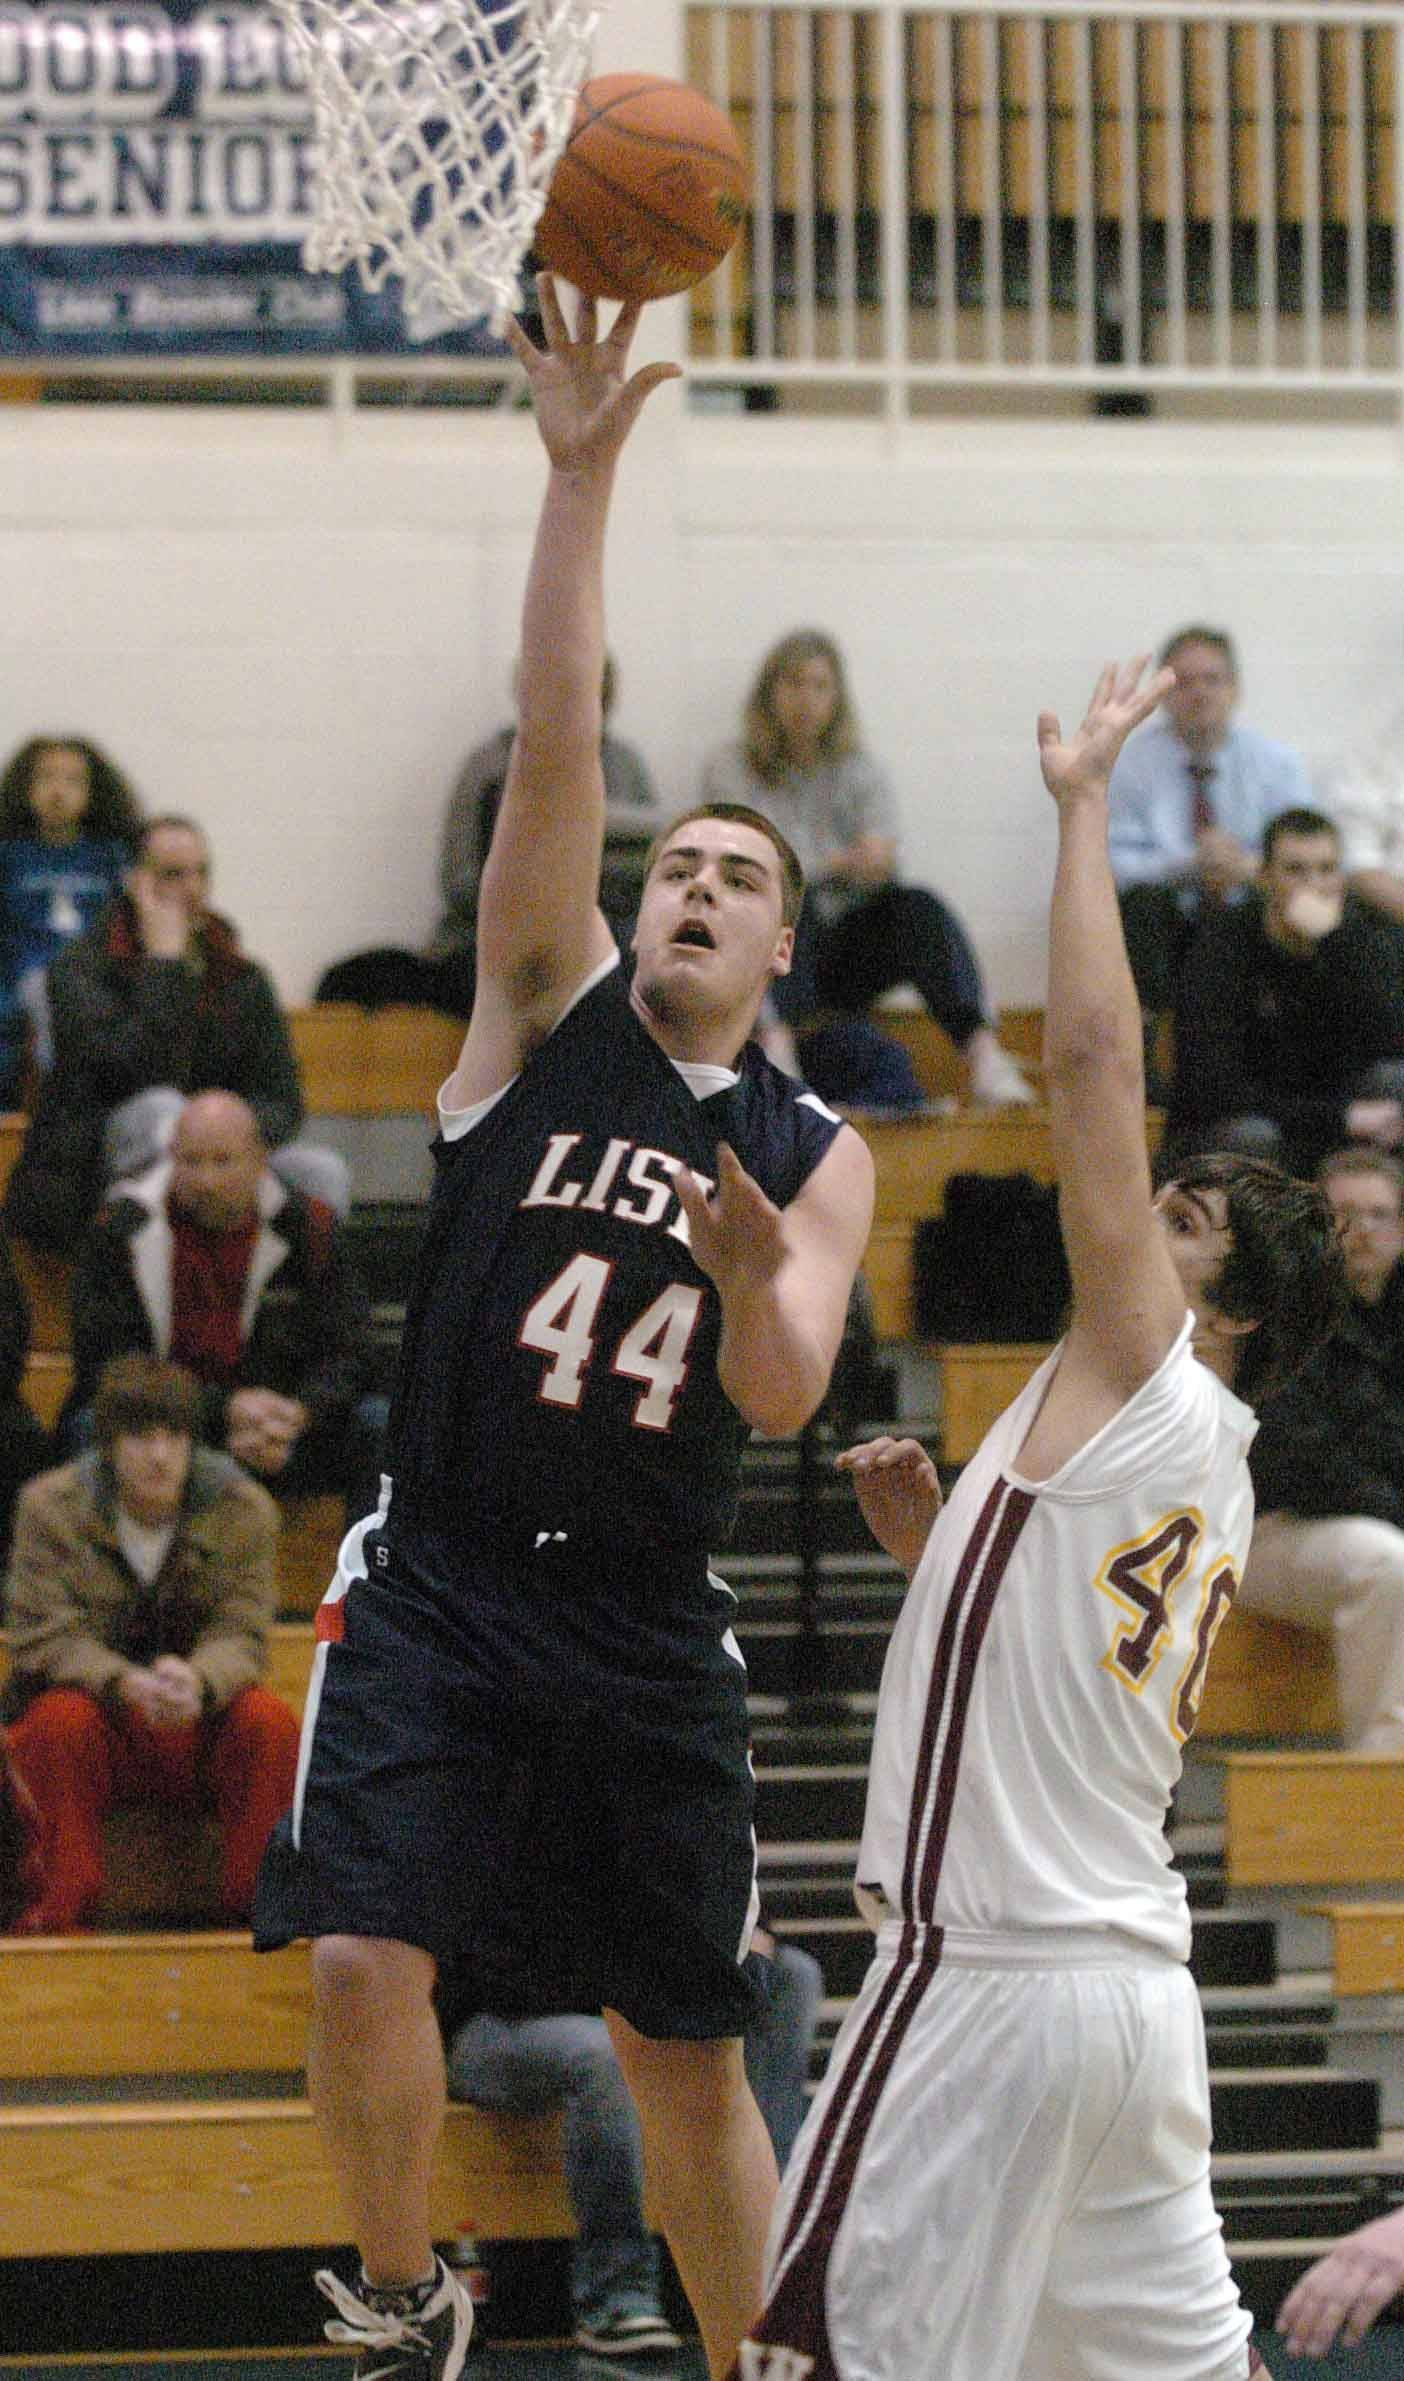 Phil Palicka of Lisle puts up a shot during the Westmont at Lisle boys Class 2A regional at Lisle HighSchool Wednesday.